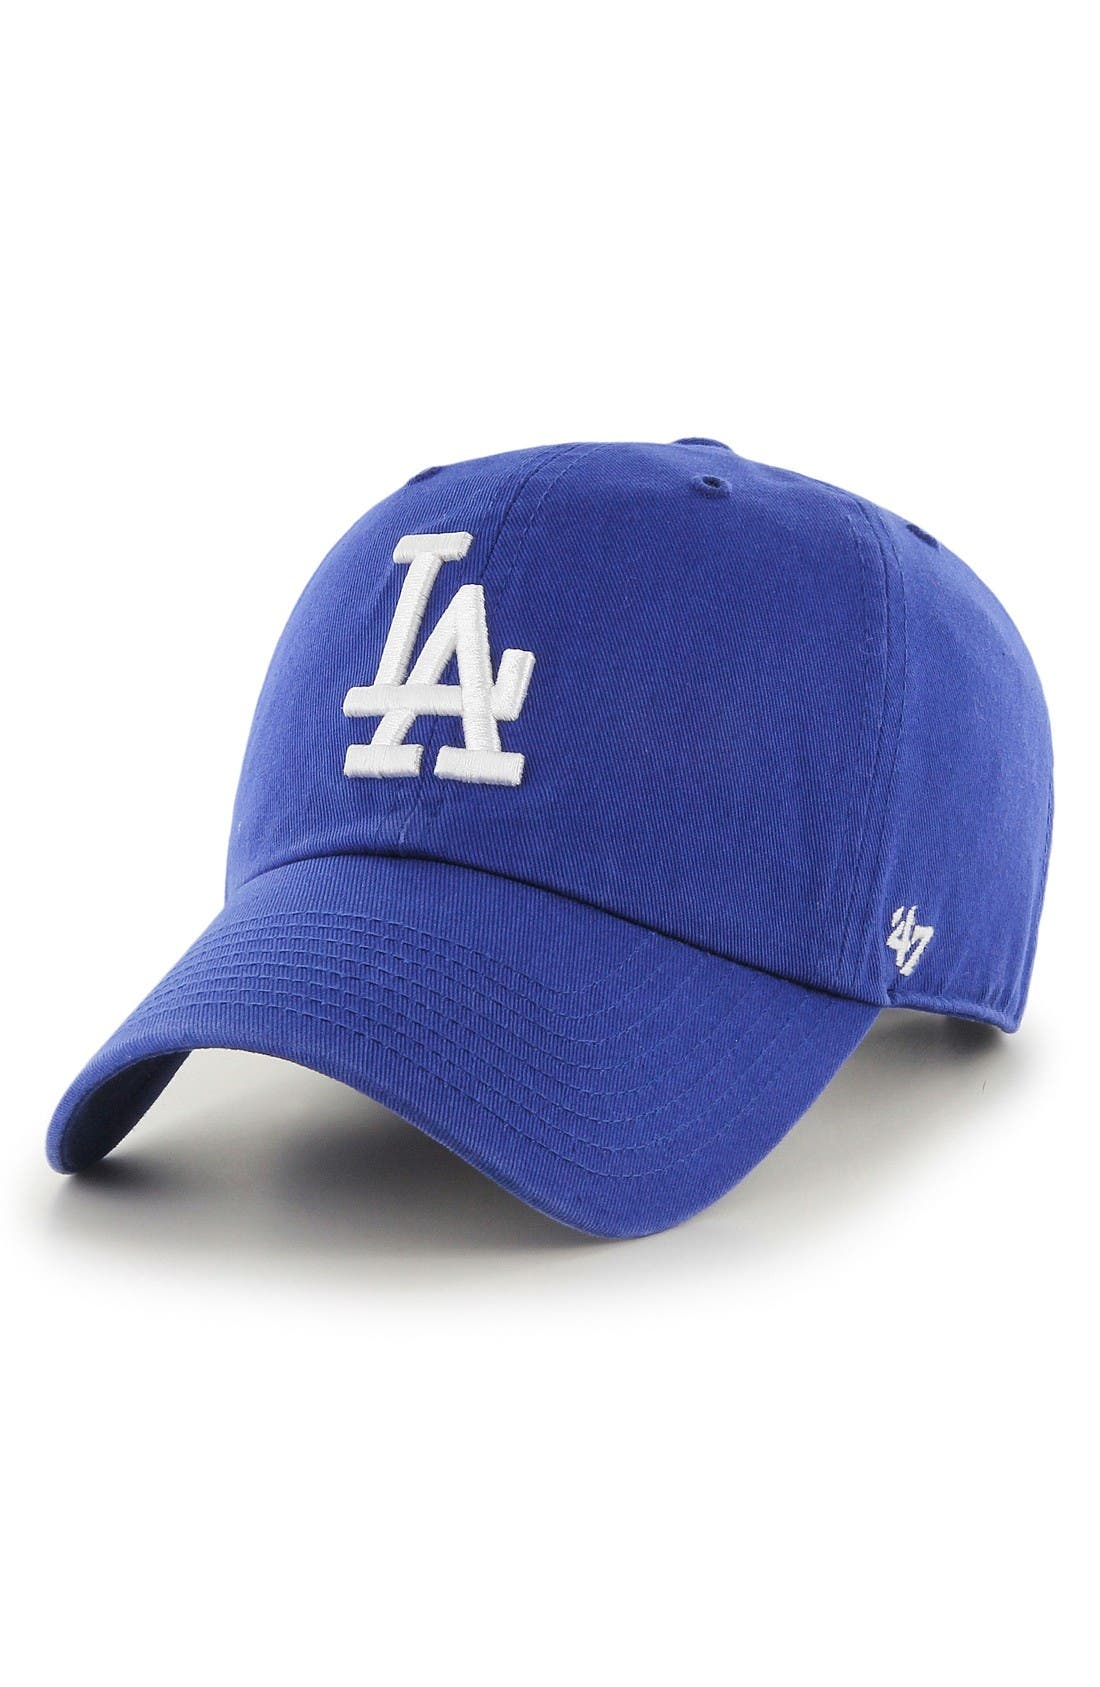 Alternate Image 1 Selected - '47 Clean Up LA Dodgers Baseball Cap